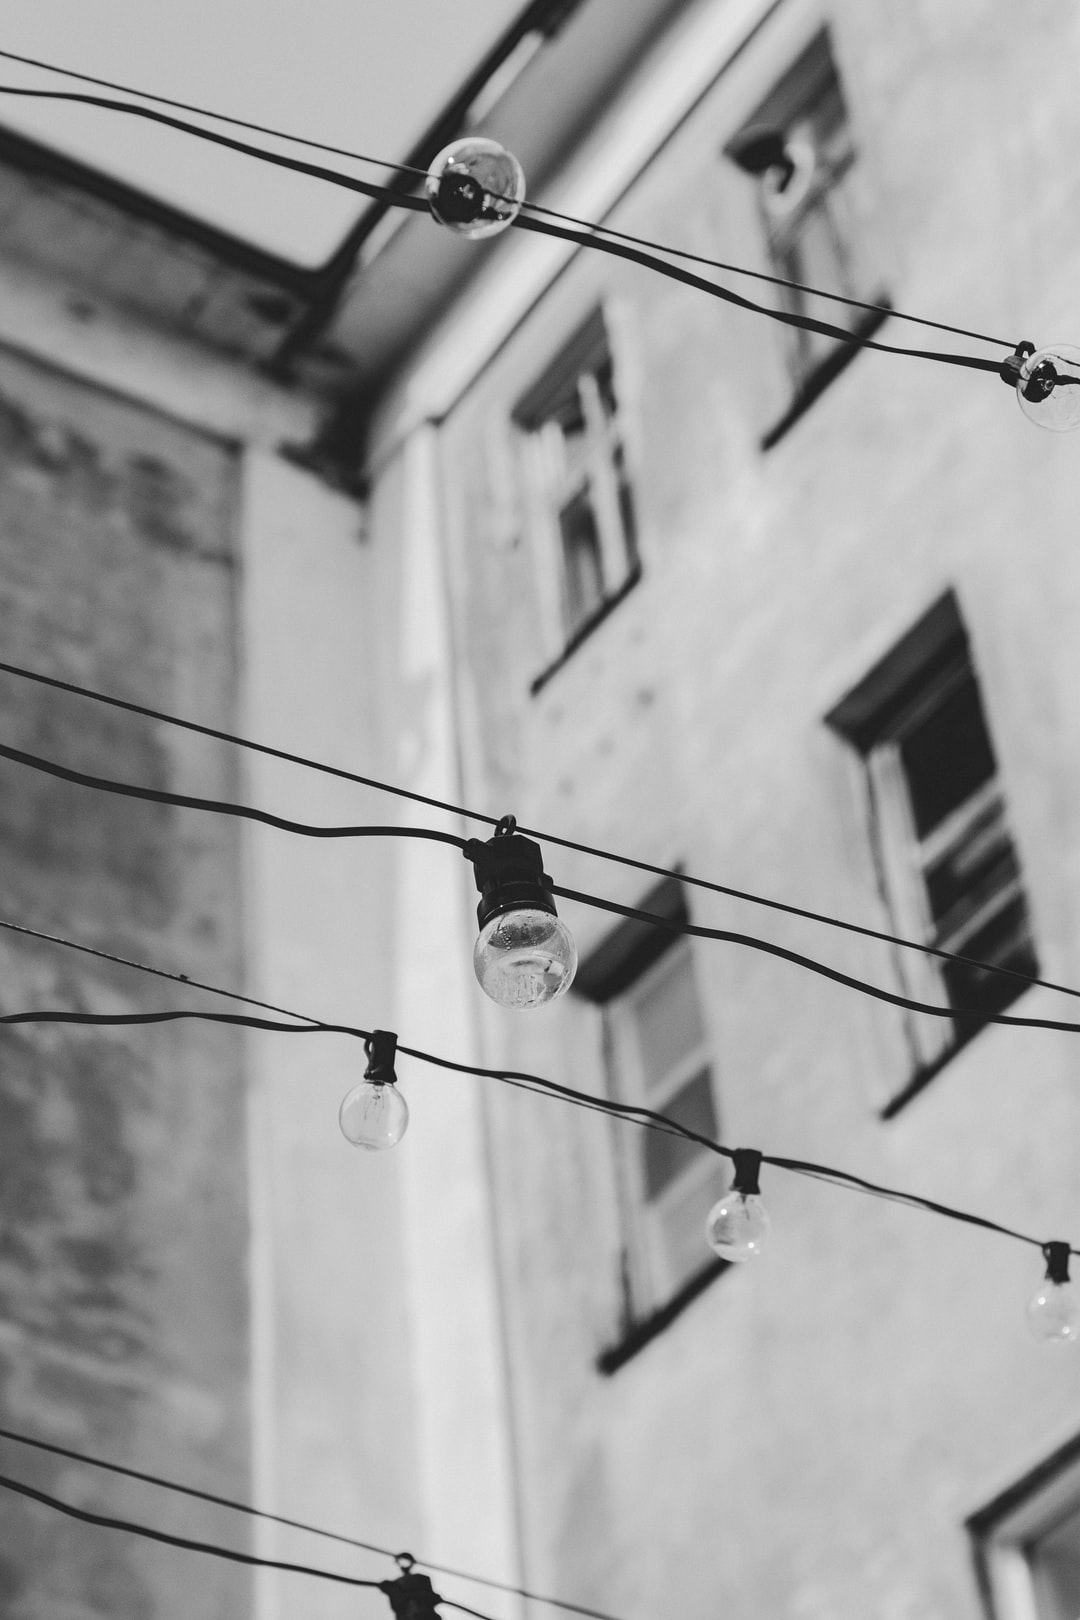 Light bulbs, street photos, black and white.